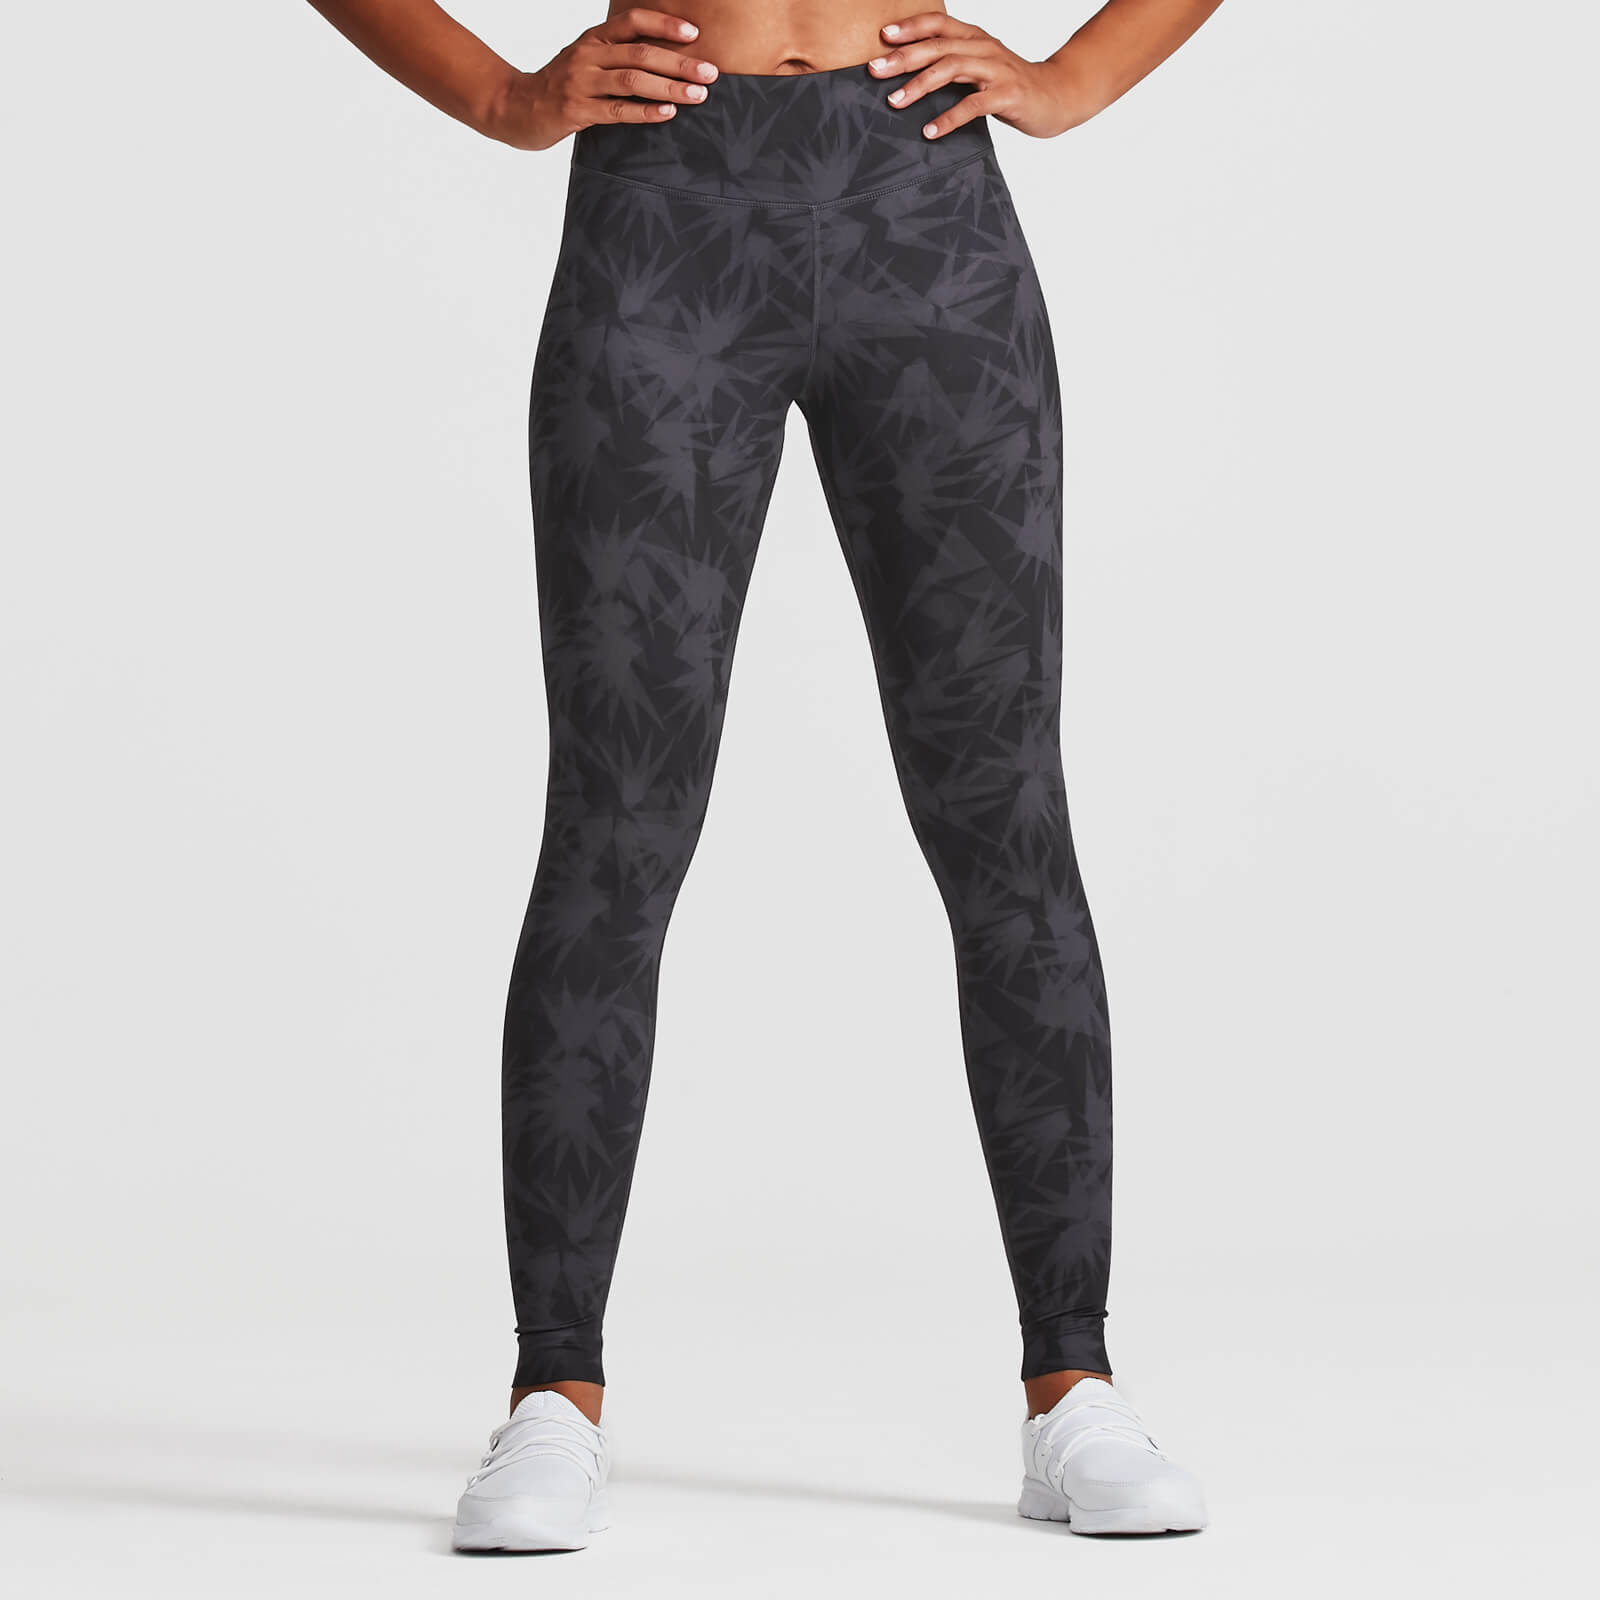 XS - IdealFit Leggings - Stargaze Print